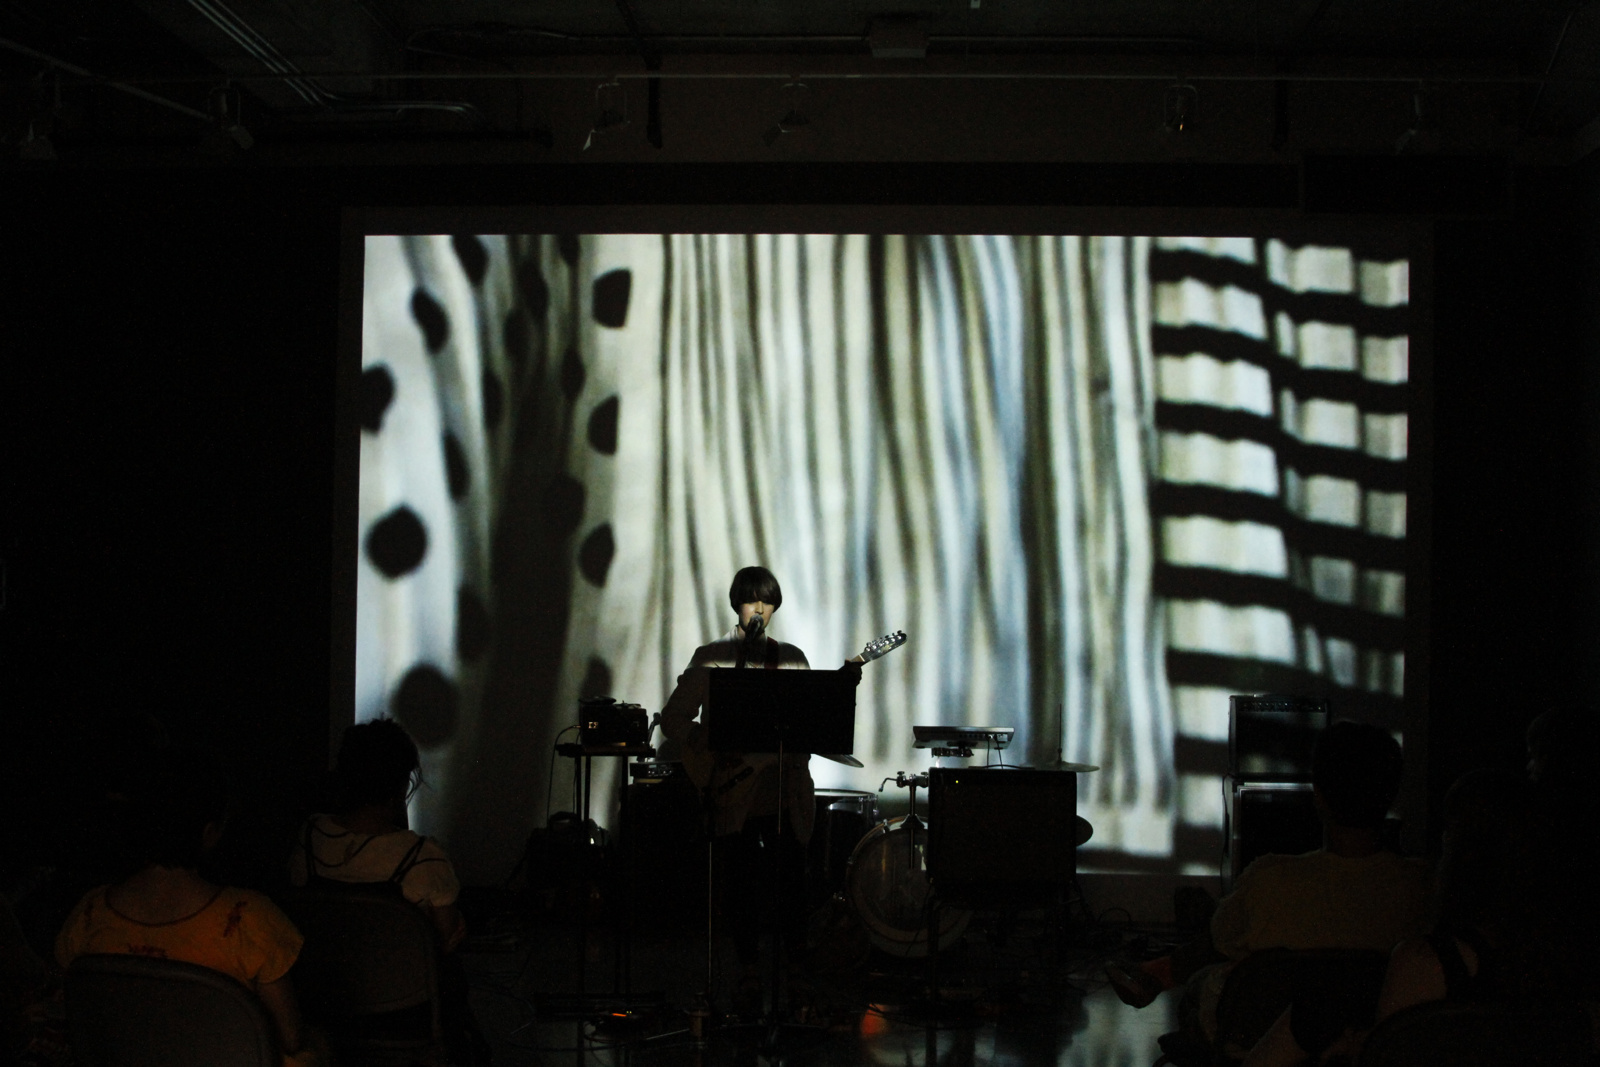 Jung Bouquet solo performance 9/3/14 at Lamar Dodd Gallery, University of Georgia Athens. photo: Katie Geha